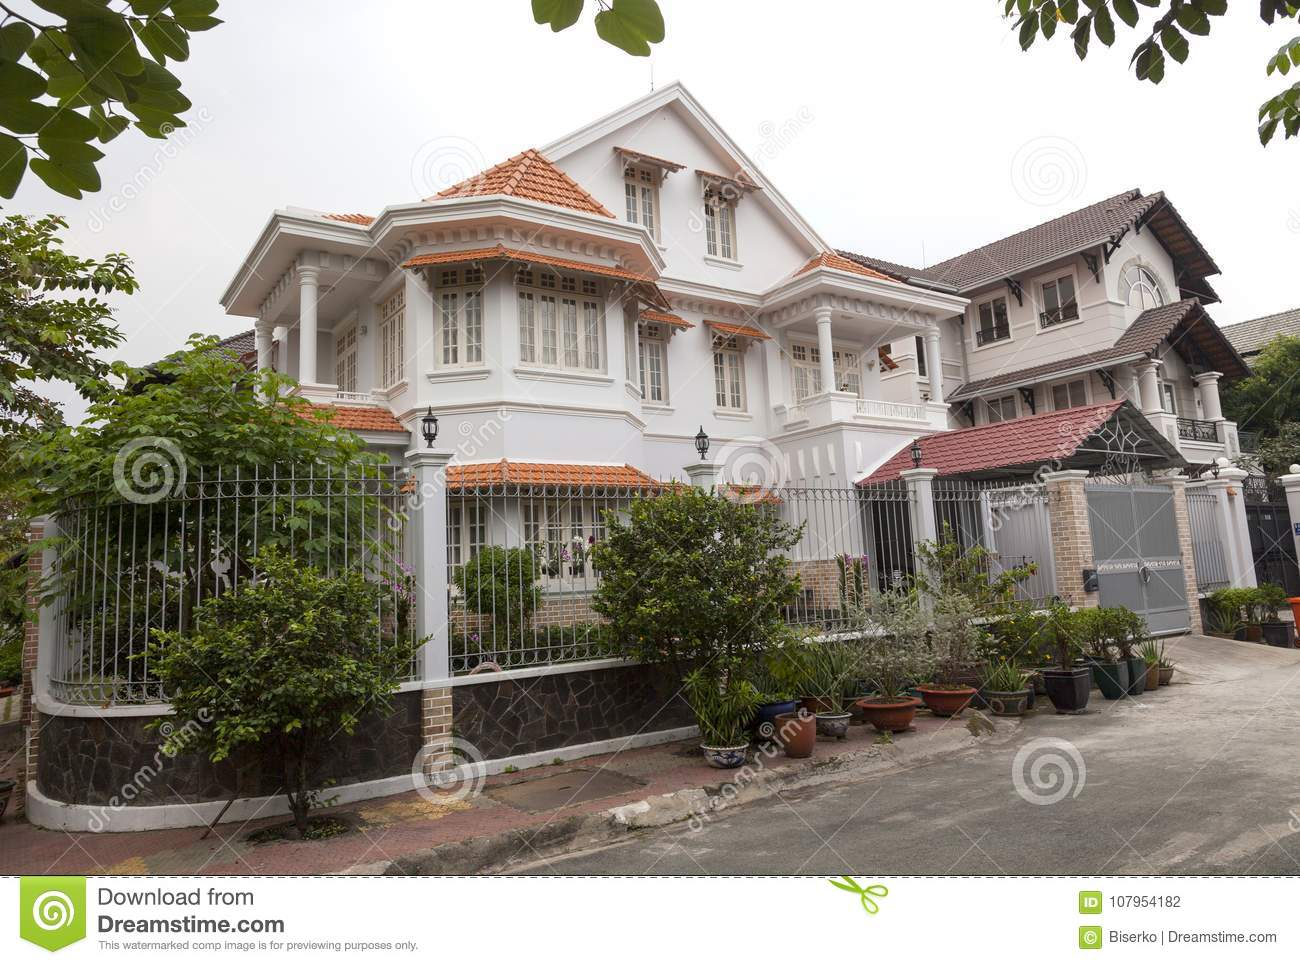 New Houses In District 2 In Ho Chi Minh Vietnam Editorial Photography Image Of China Million 107954182